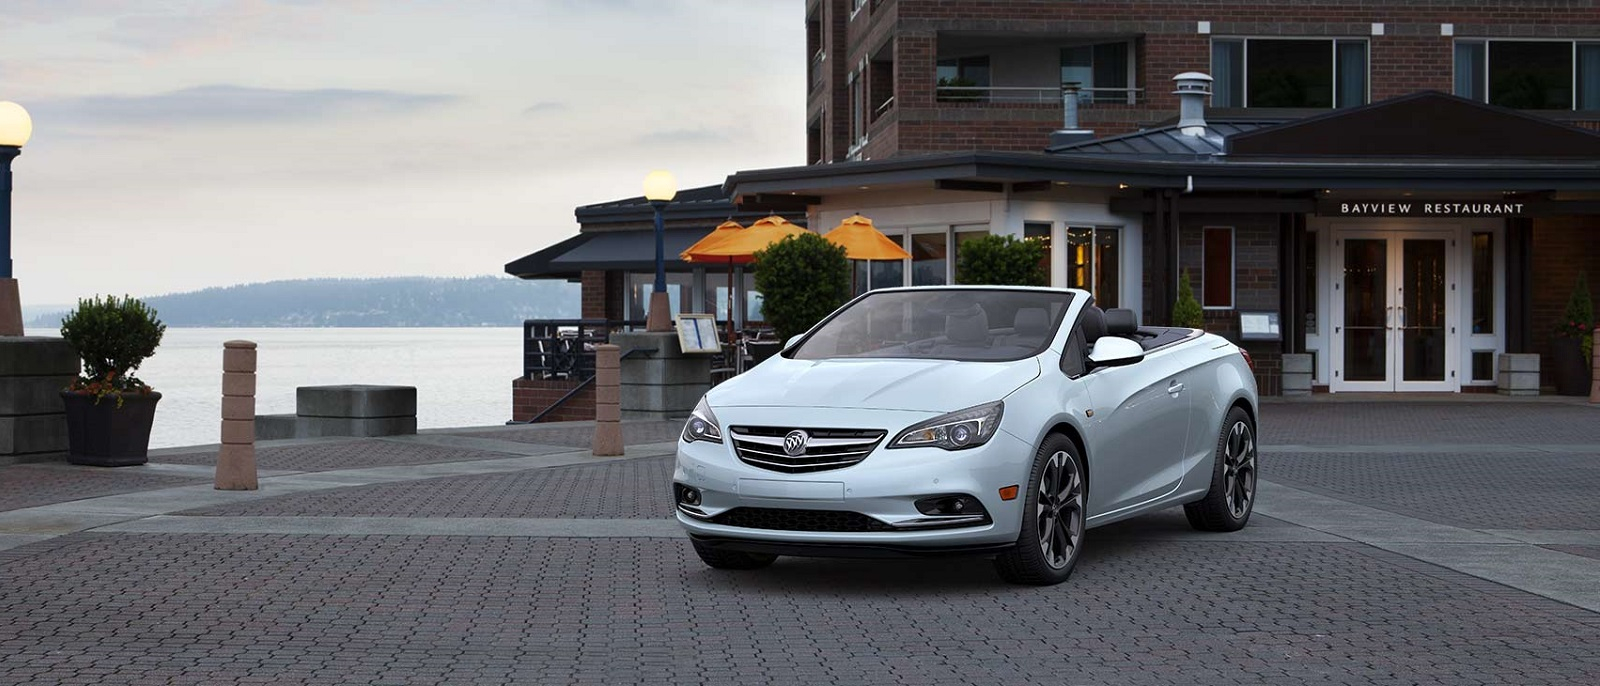 The 2017 Buick Cascada Redesign Coming To Troy And Dayton 2021 Buick Cascada Inventory, Images, Incentives